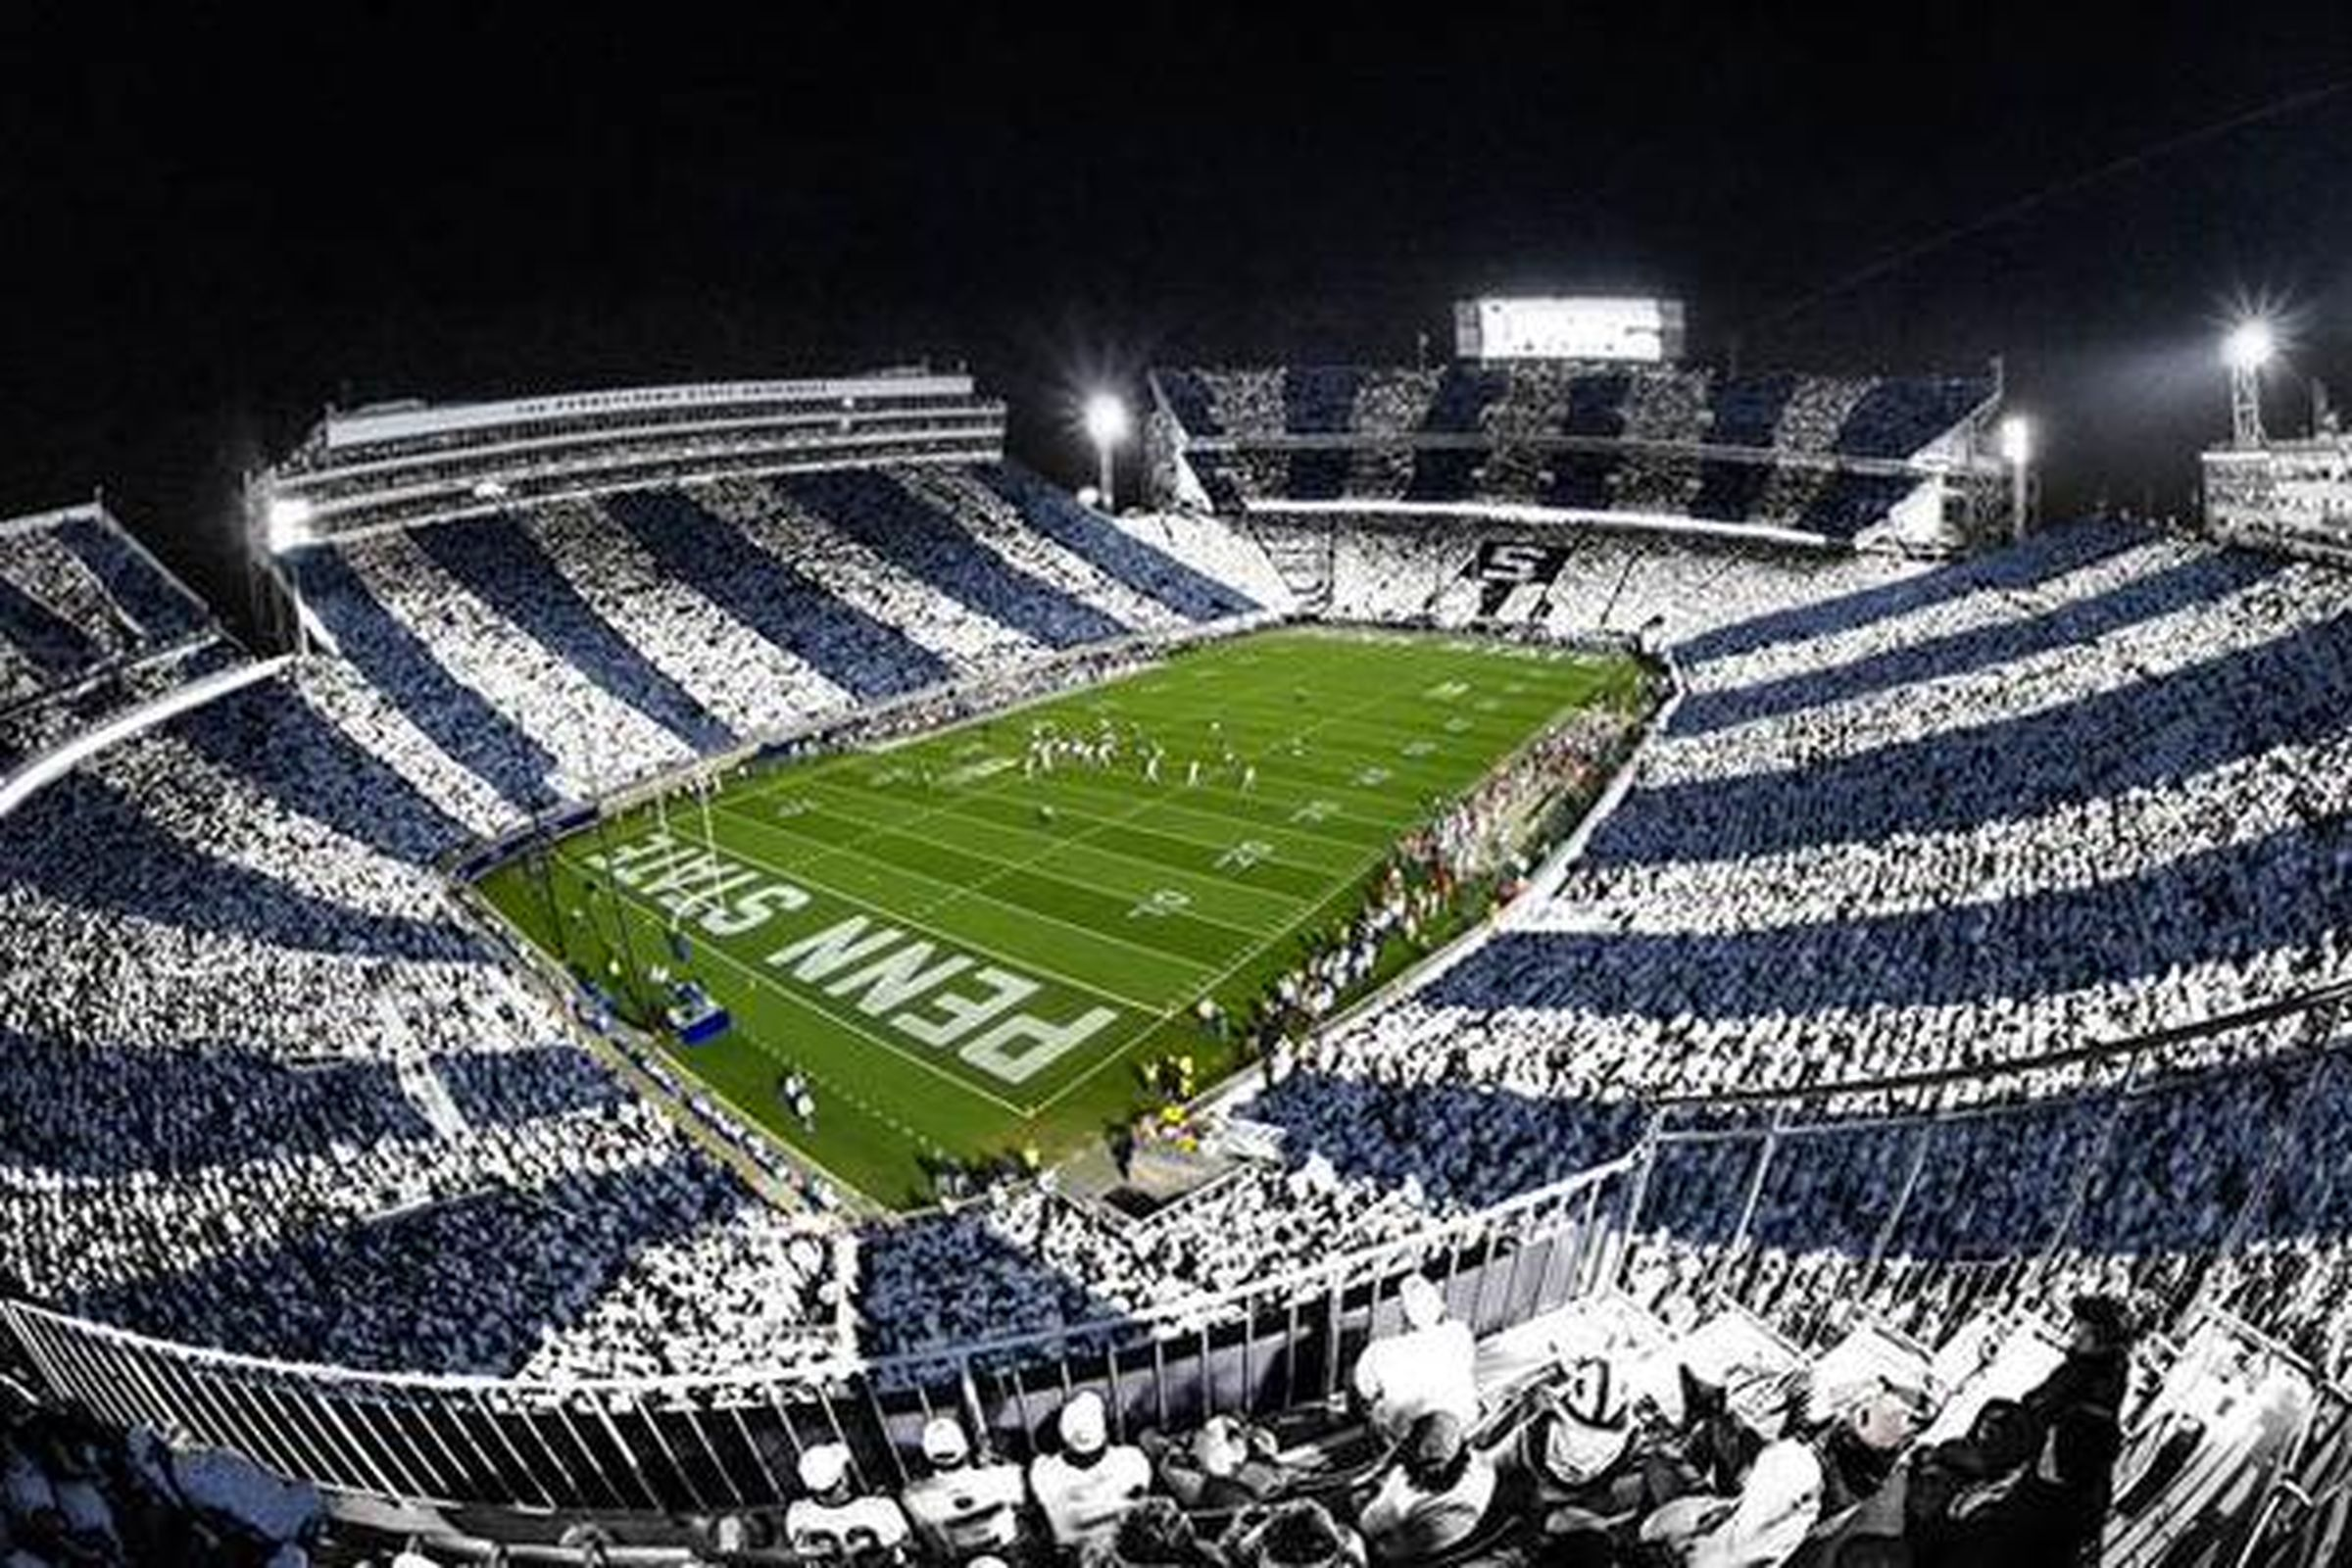 Beaver Stadium during a night game.